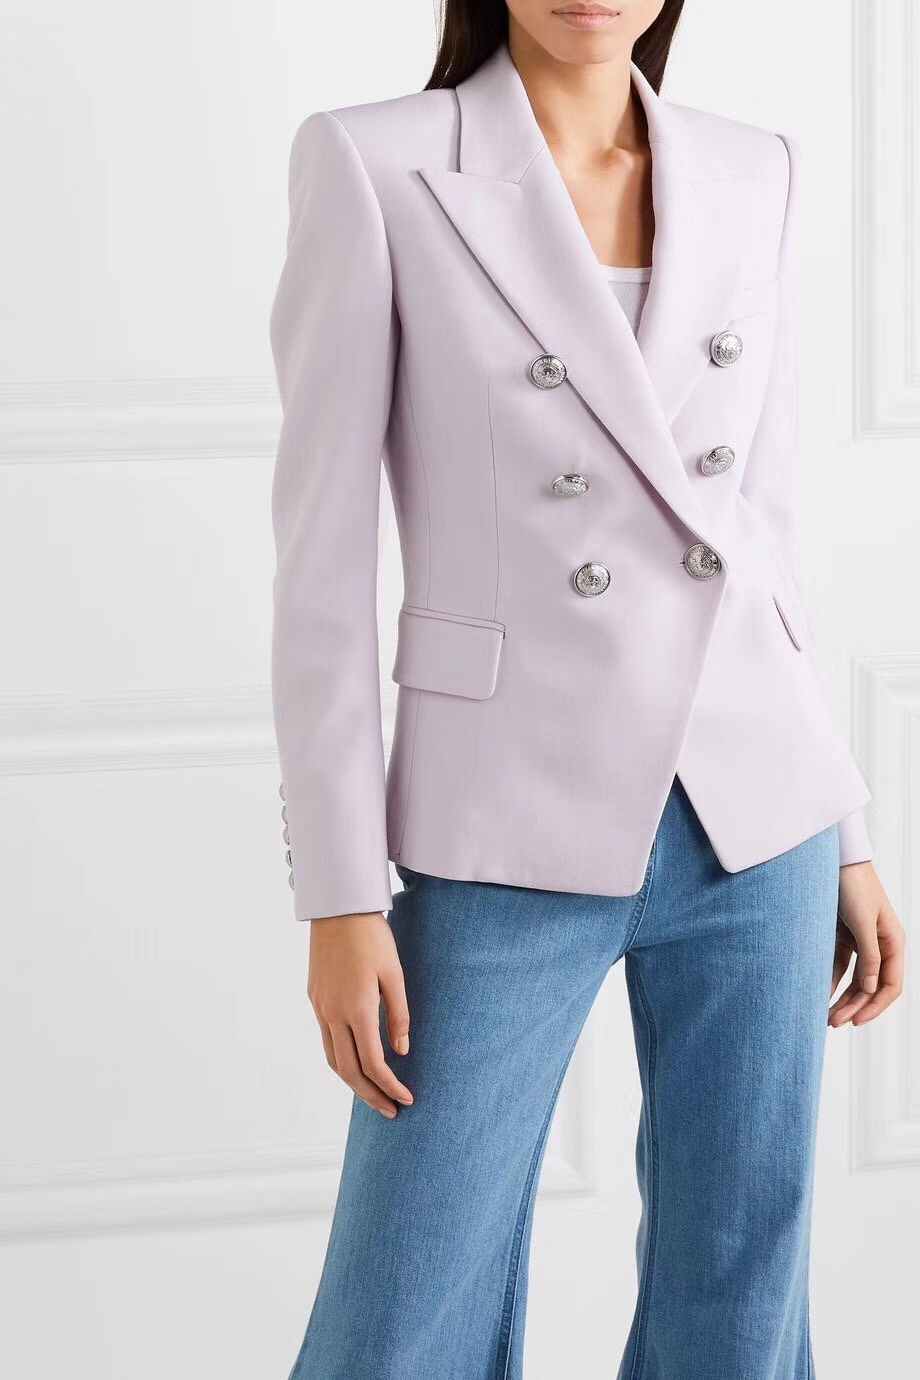 Women's Lux Brand Suit Blazer 2019 Double breasted Deisgn High Fashion Formal Style Office Wear Professional Business Blazers